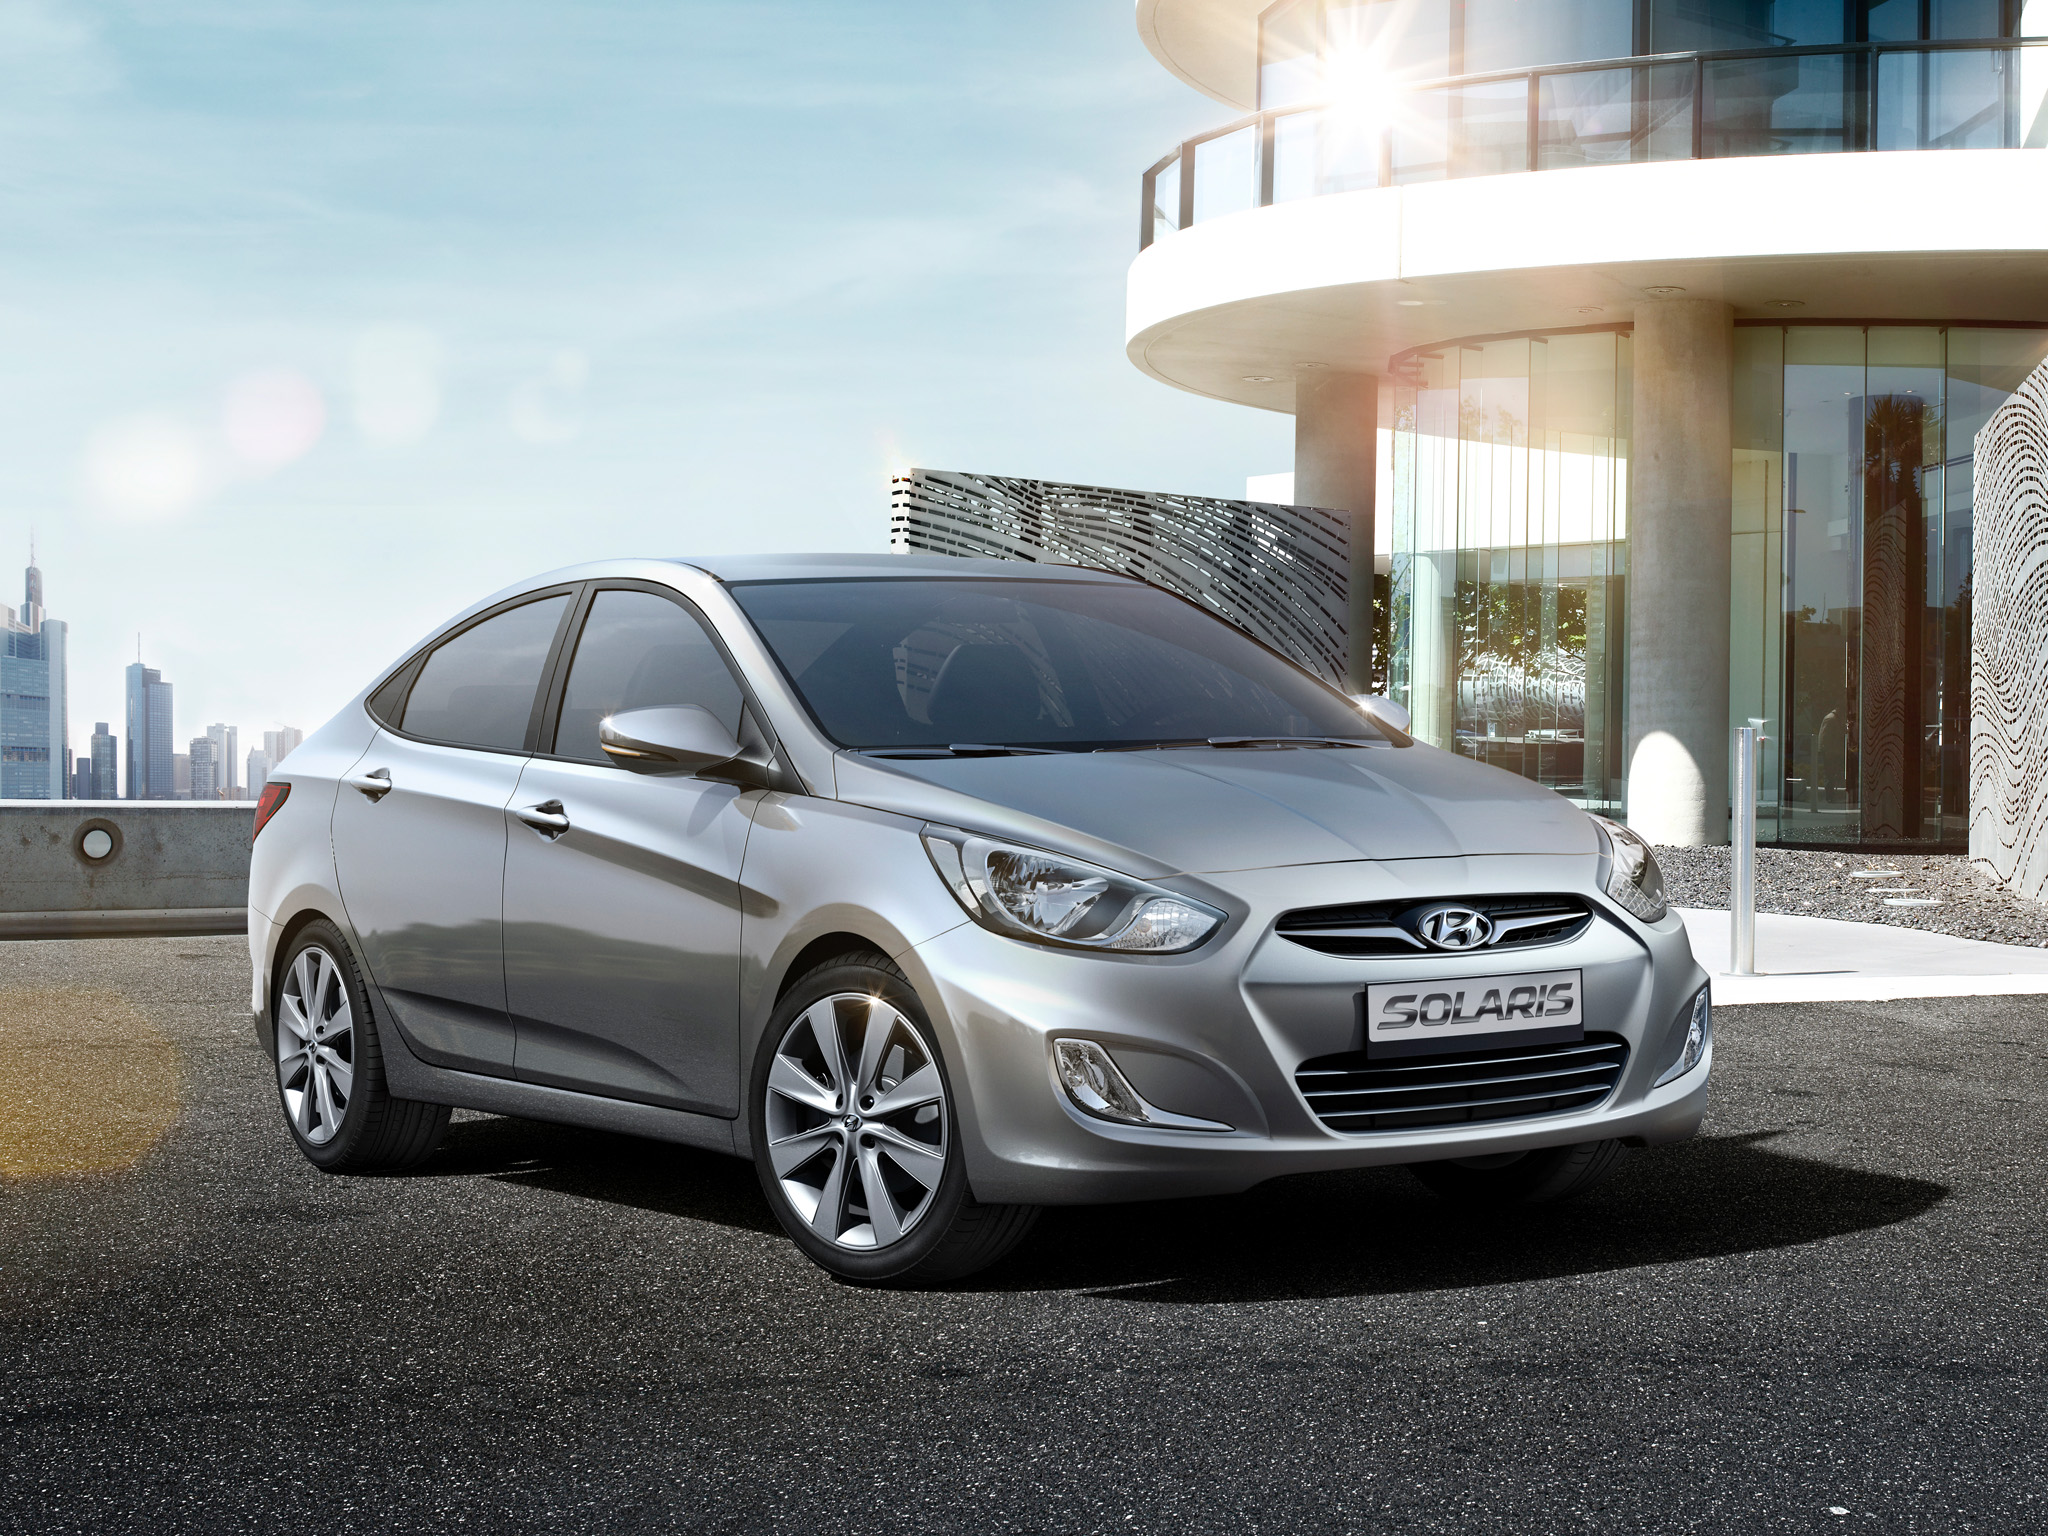 hyundai solaris sedan 2012 wallpaper